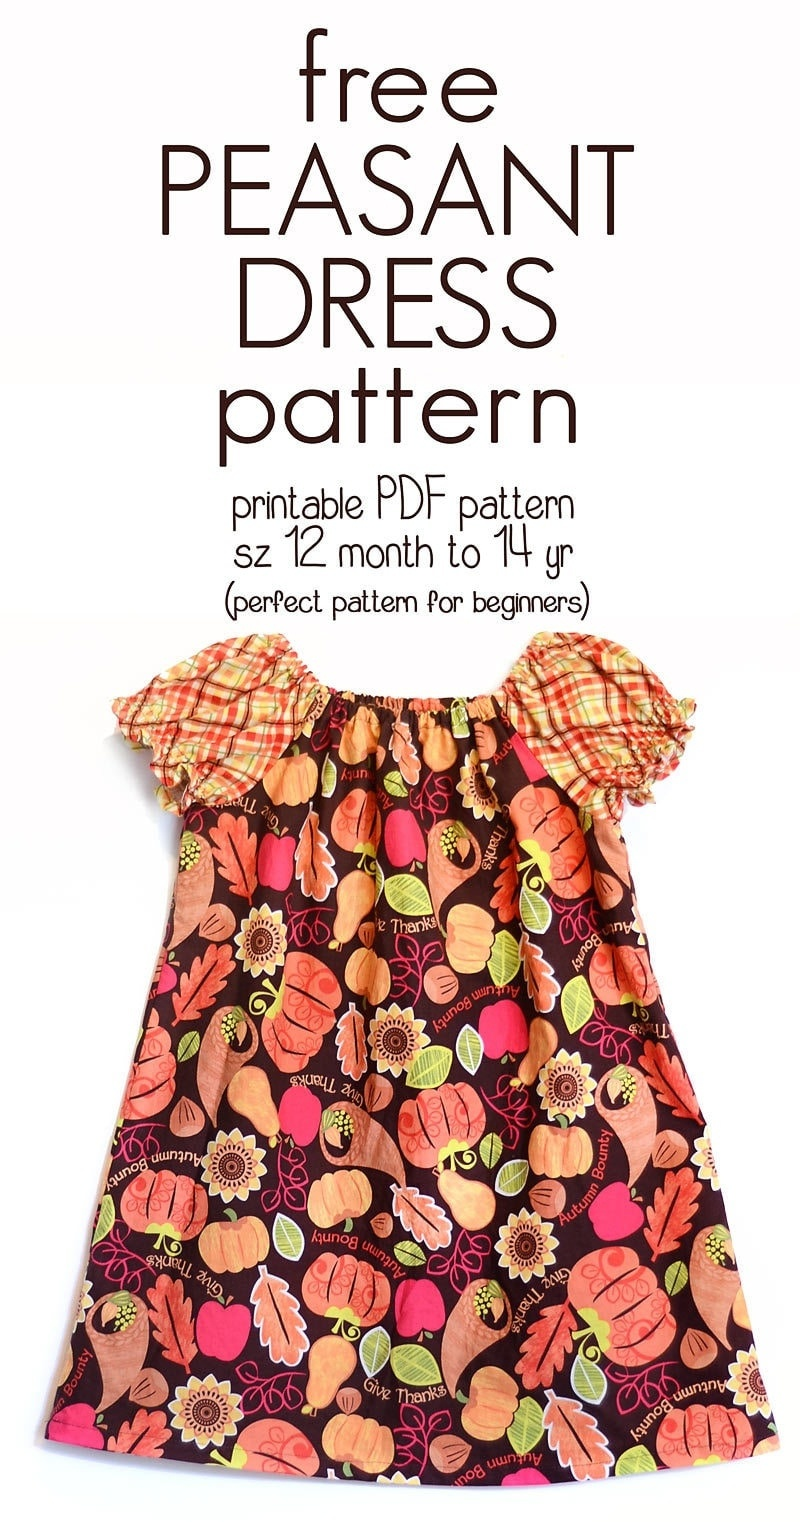 Learn How To Sew A Peasant Dress With This Free Peasant Dress - Free Printable Toddler Dress Patterns